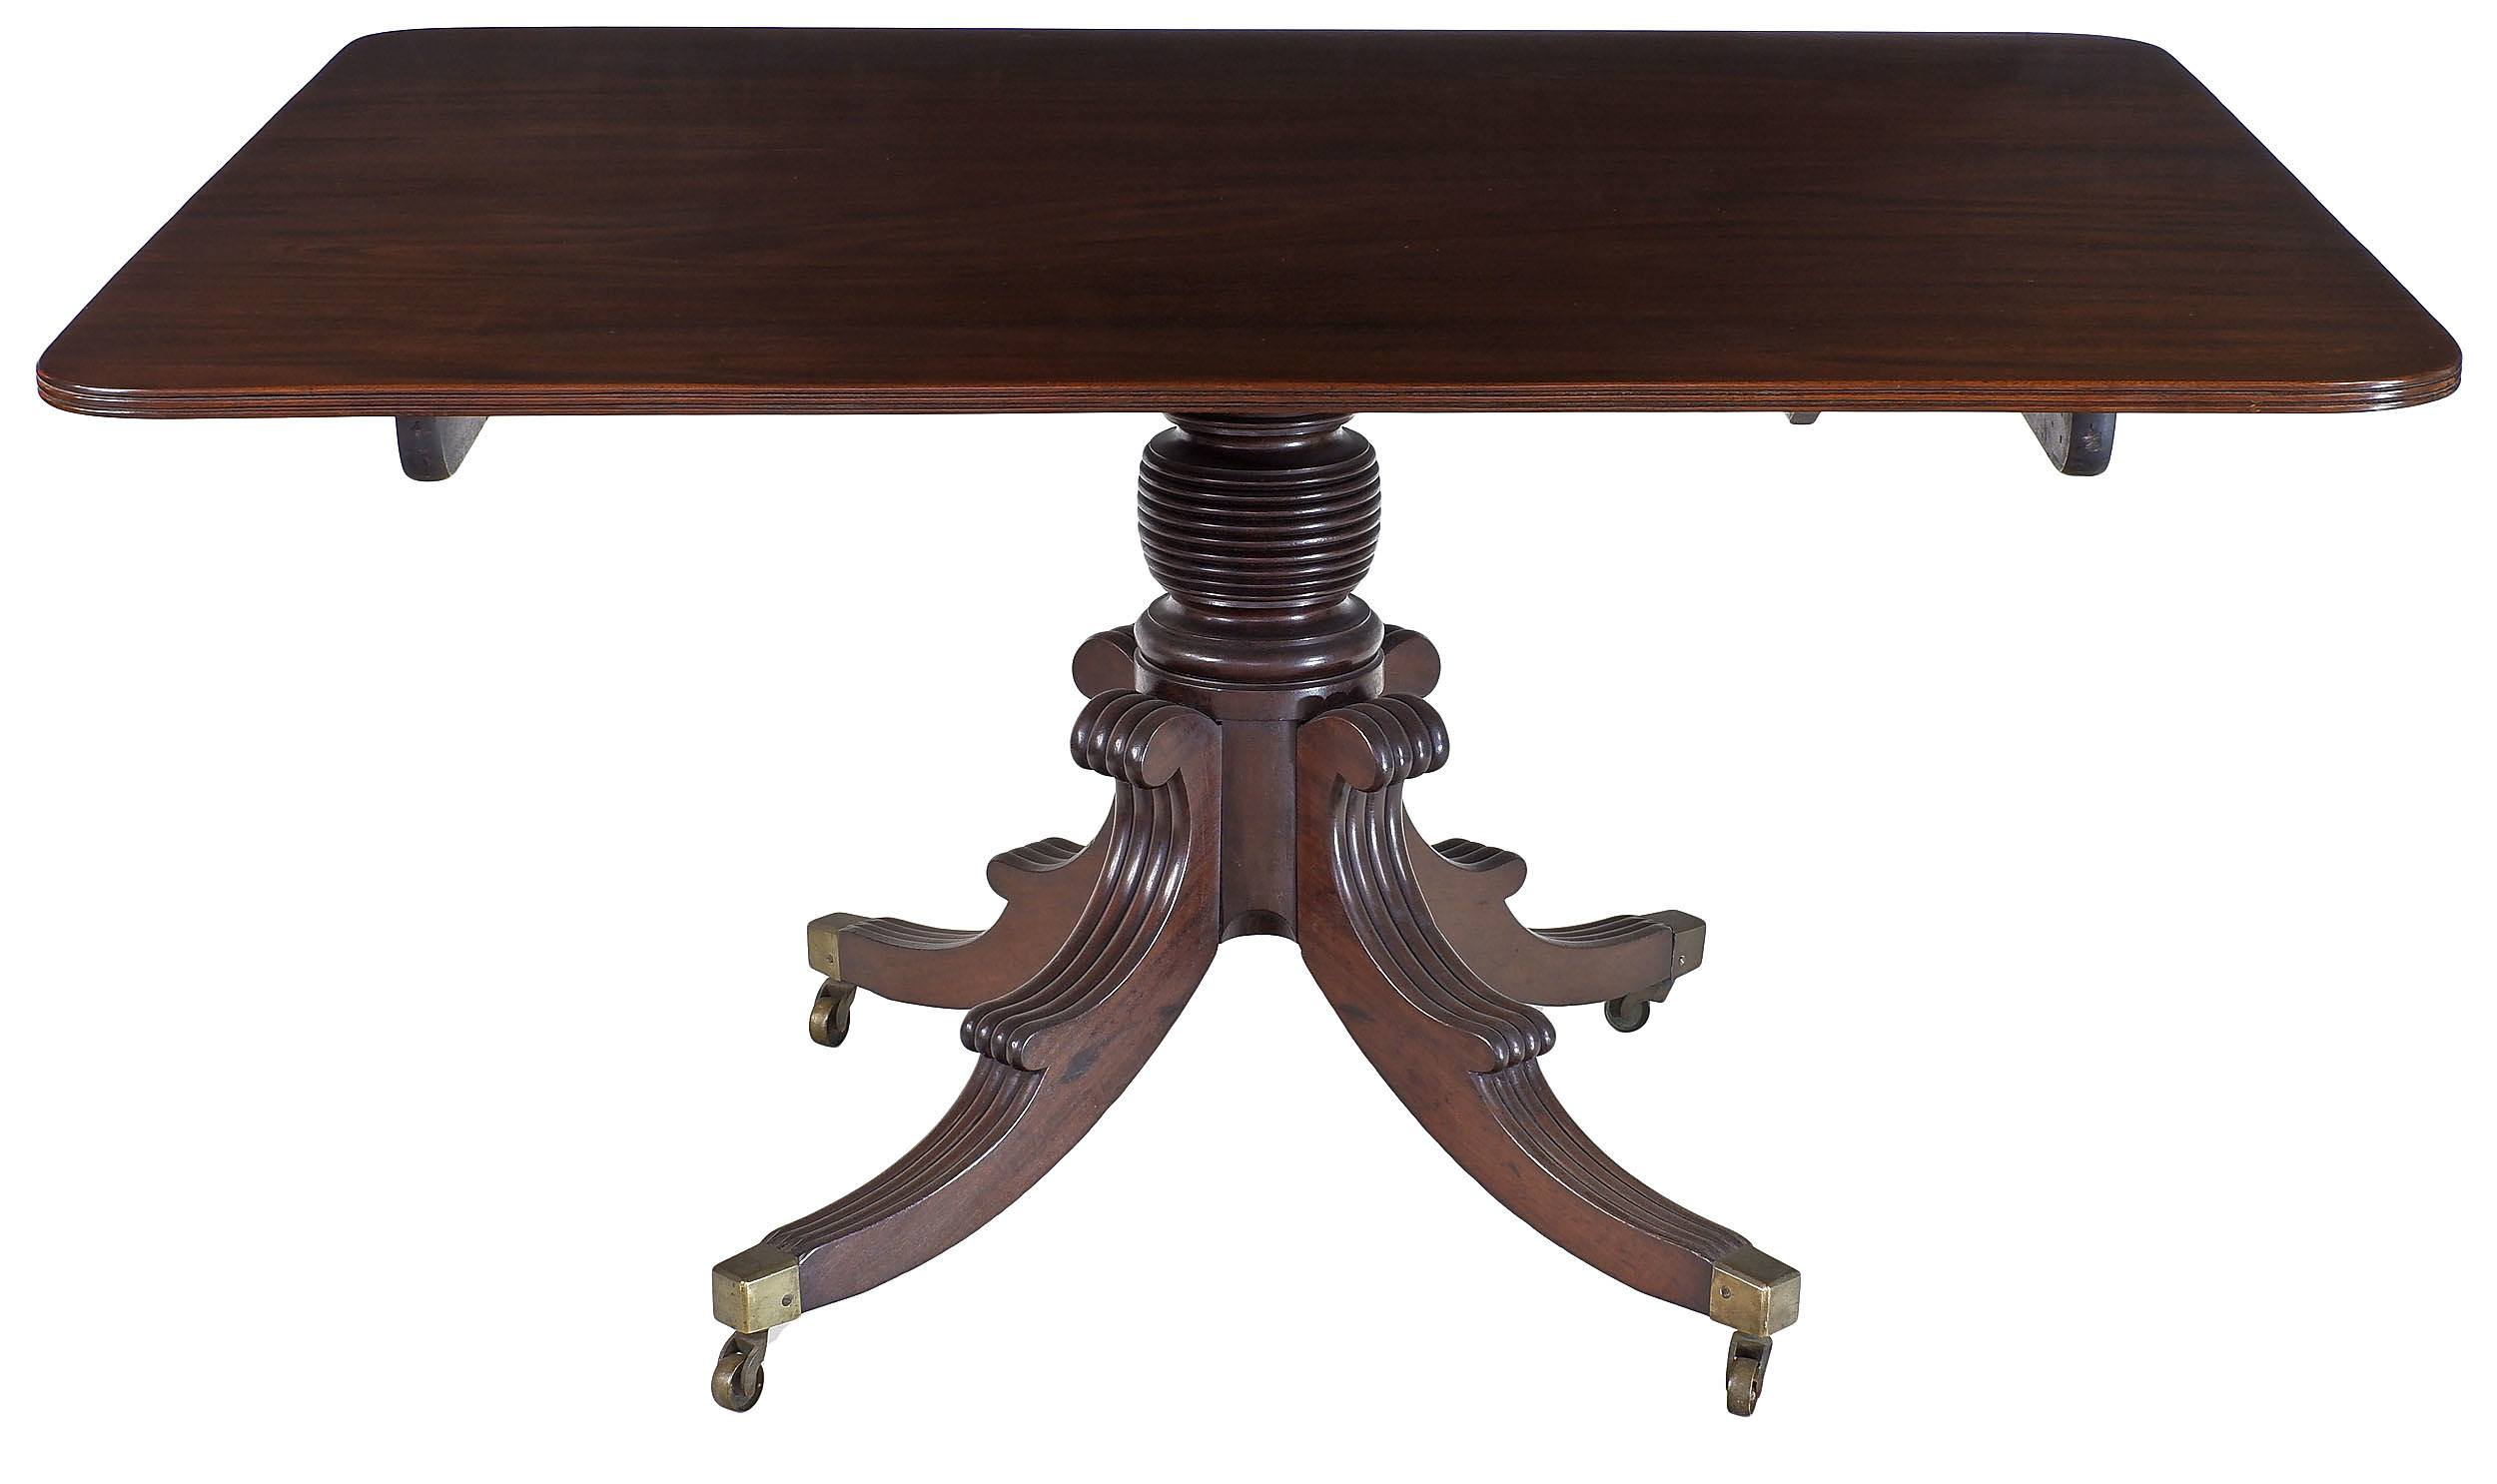 'Rectangular Irish Regency Mahogany Tilt-Top Breakfast Table Circa 1820'